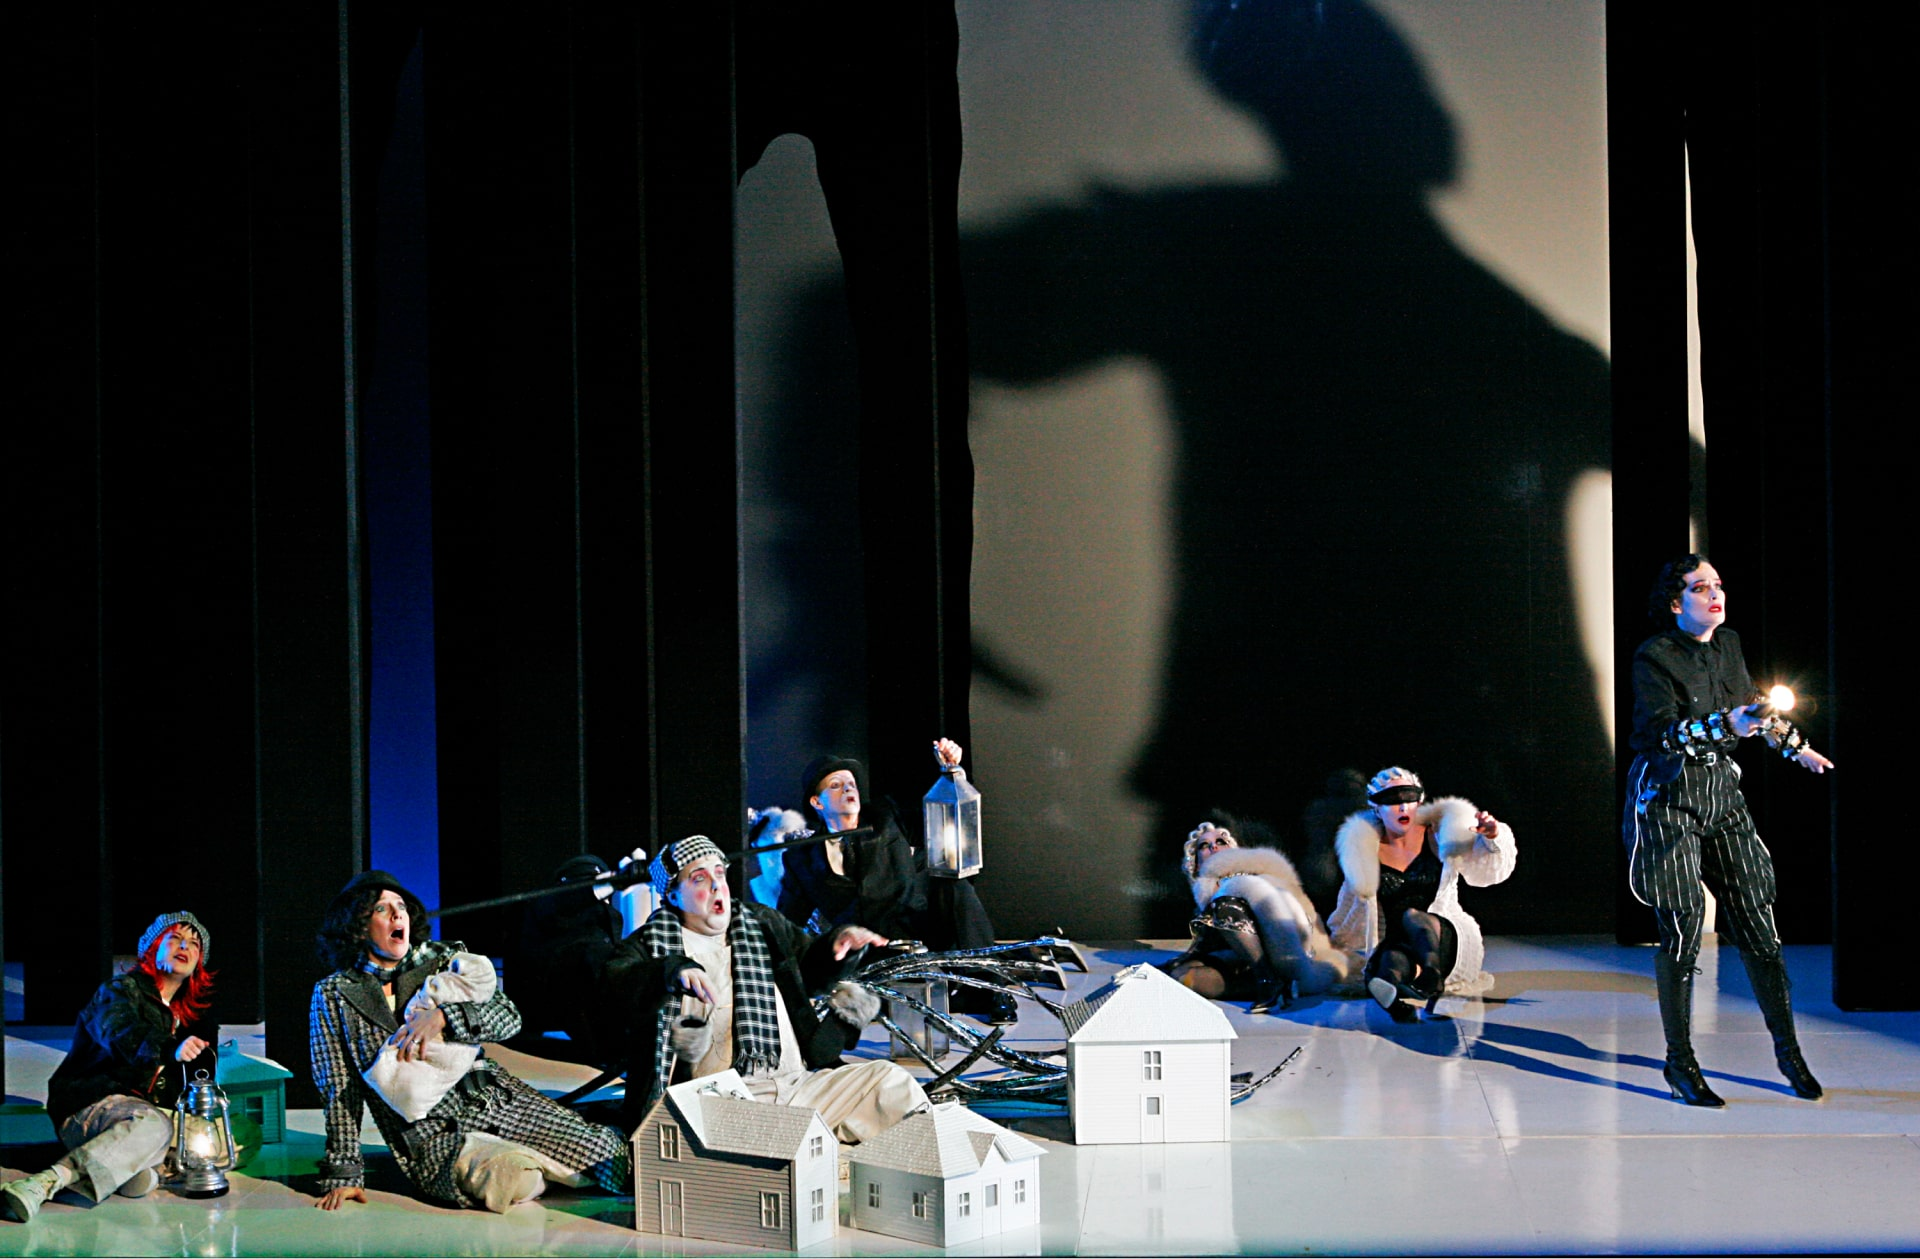 Various fable characters recoil on floor amongst model houses in front of giant shadow of human form.